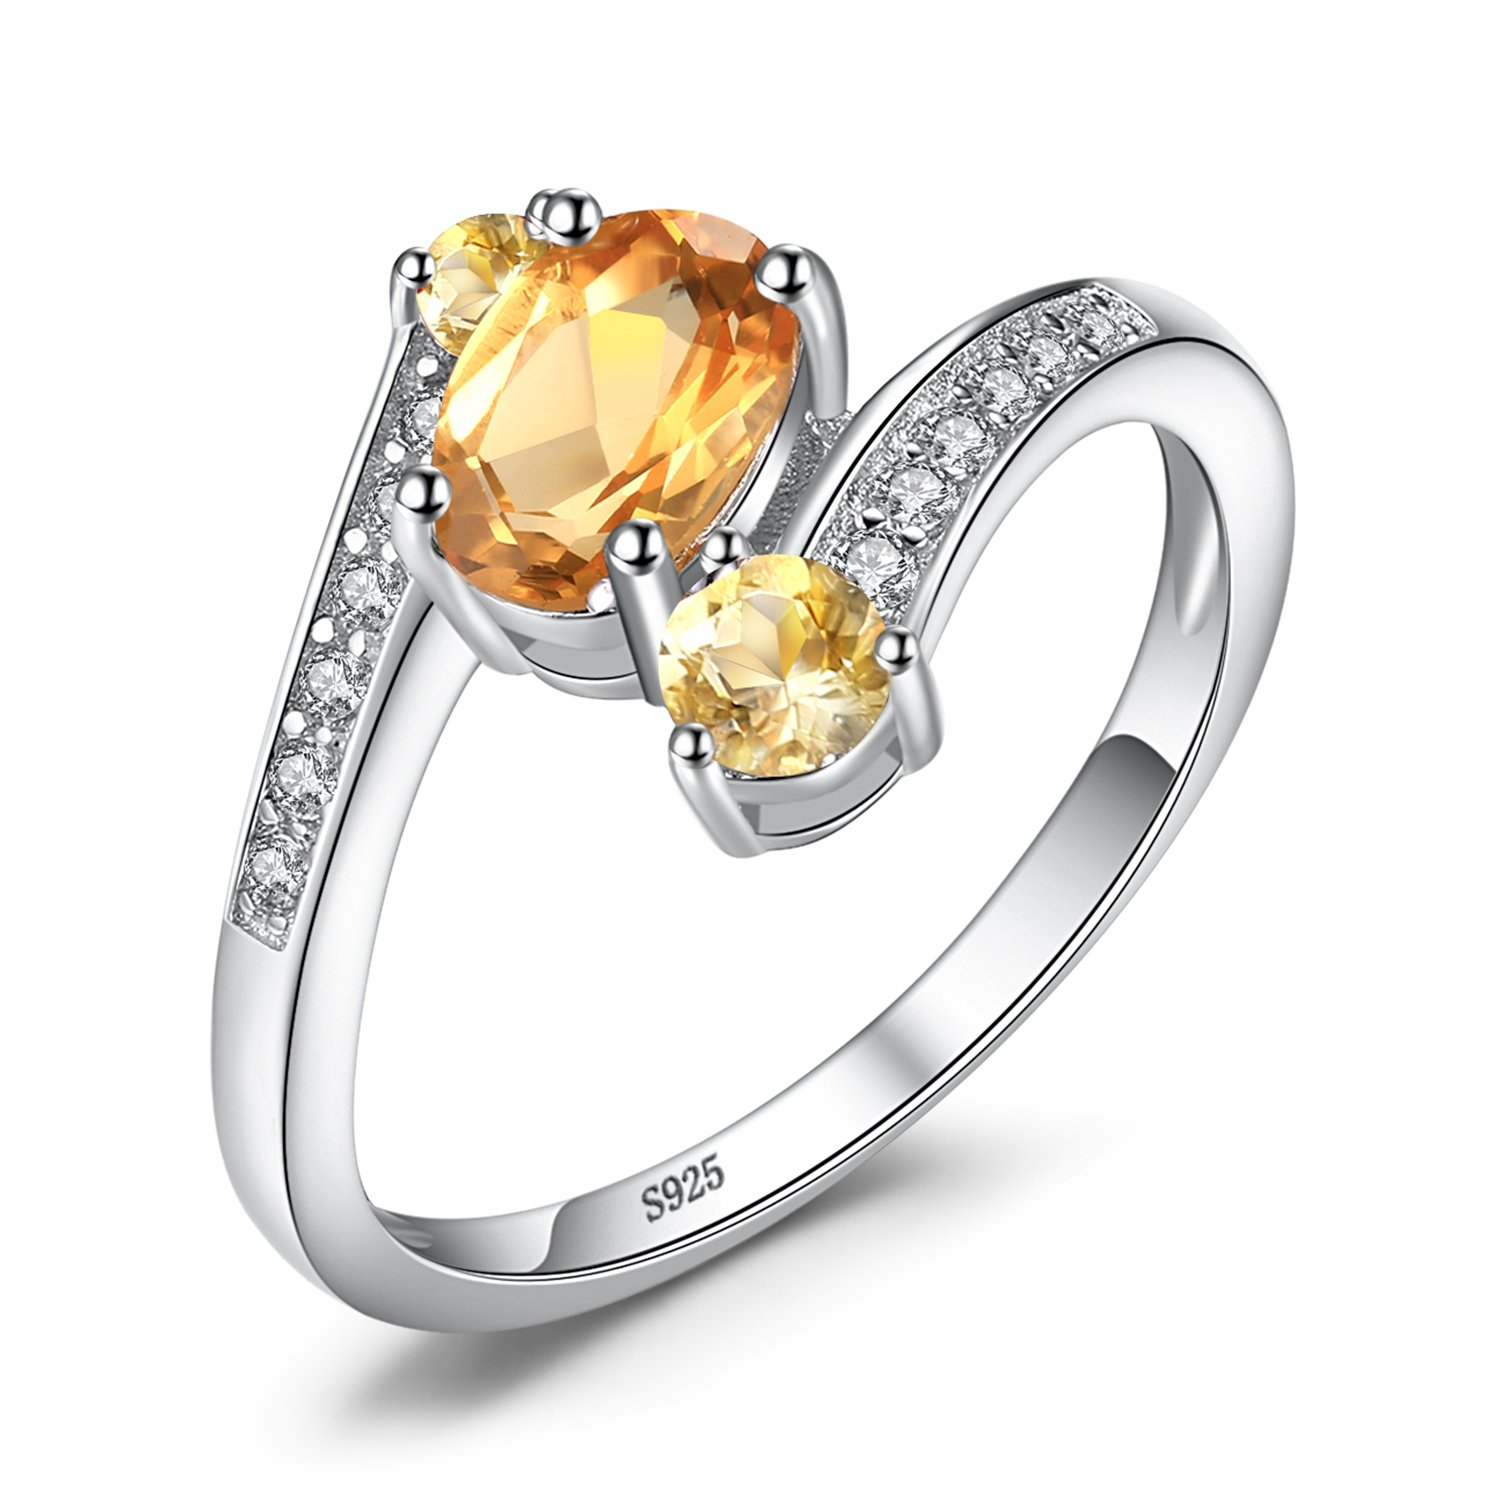 JewelryPalace Natural Amethyst Citrine Garnet Peridot Topaz 3 Stones Anniversary Ring 925 Sterling Silver CA-LR00720